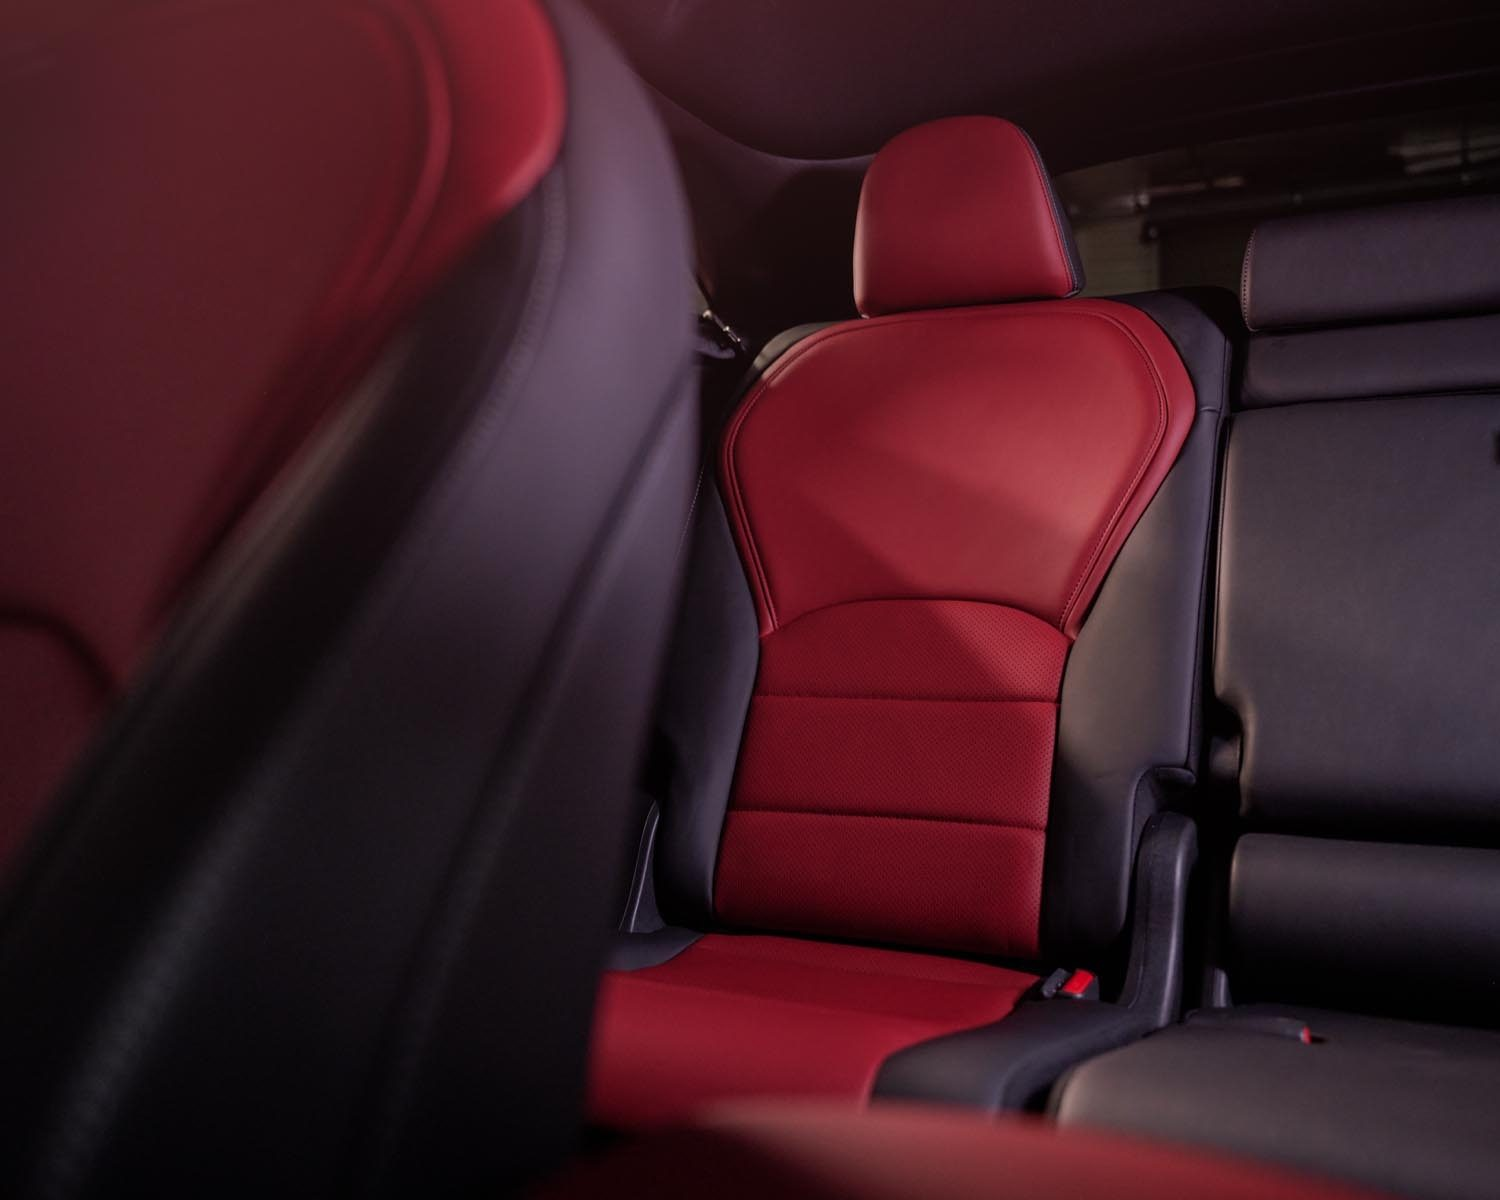 Luxurious black and red sliding second row seats with versatile cargo space | 2022 INFINITI QX55 crossover Reveal